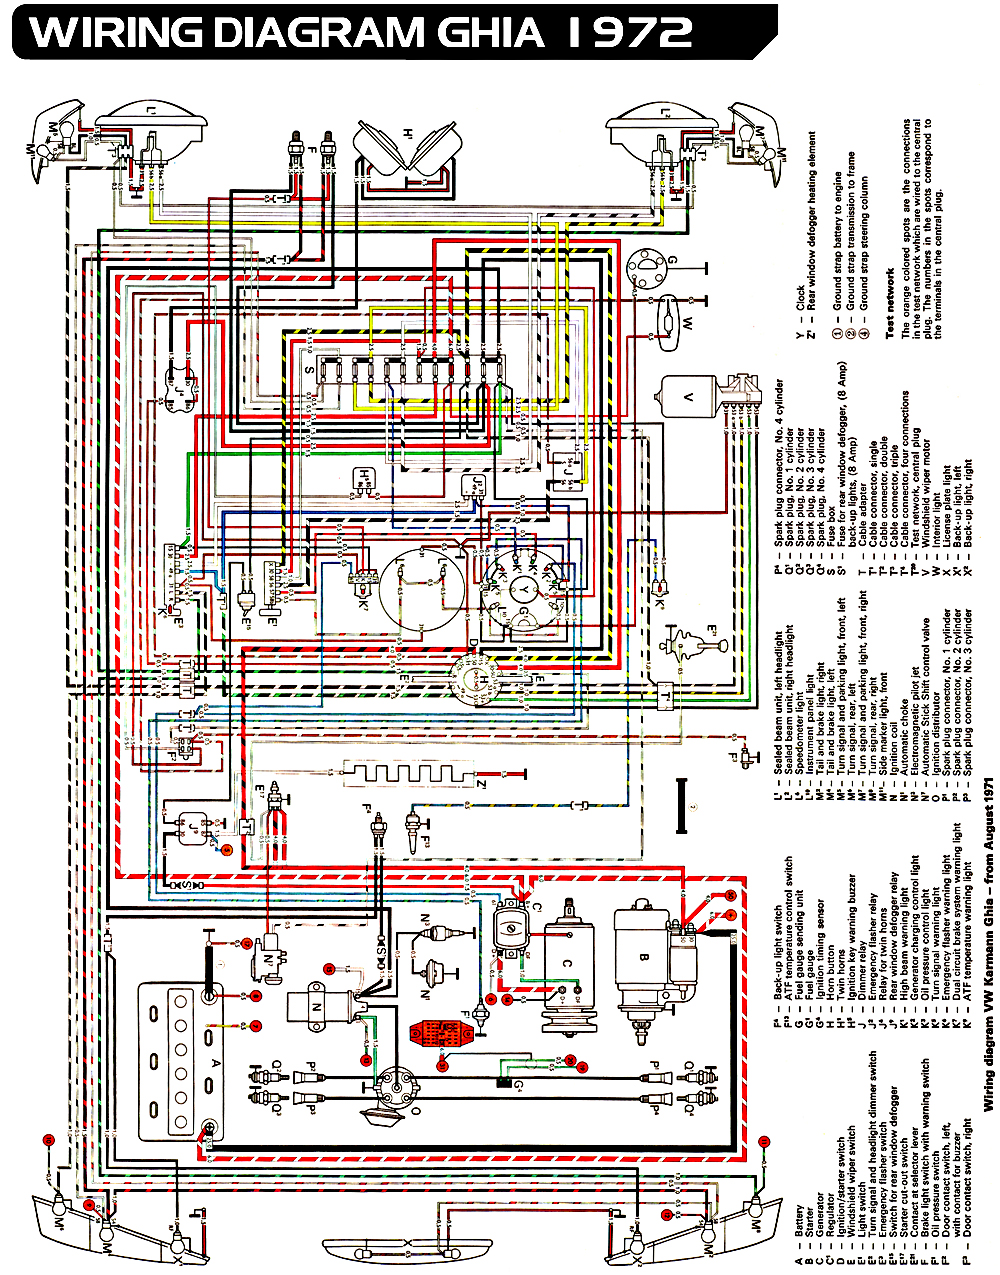 Volkswagen Wiring Diagram 1973 Vw Beetle - Wire Harness Connector Clip for Wiring  Diagram SchematicsWiring Diagram Schematics